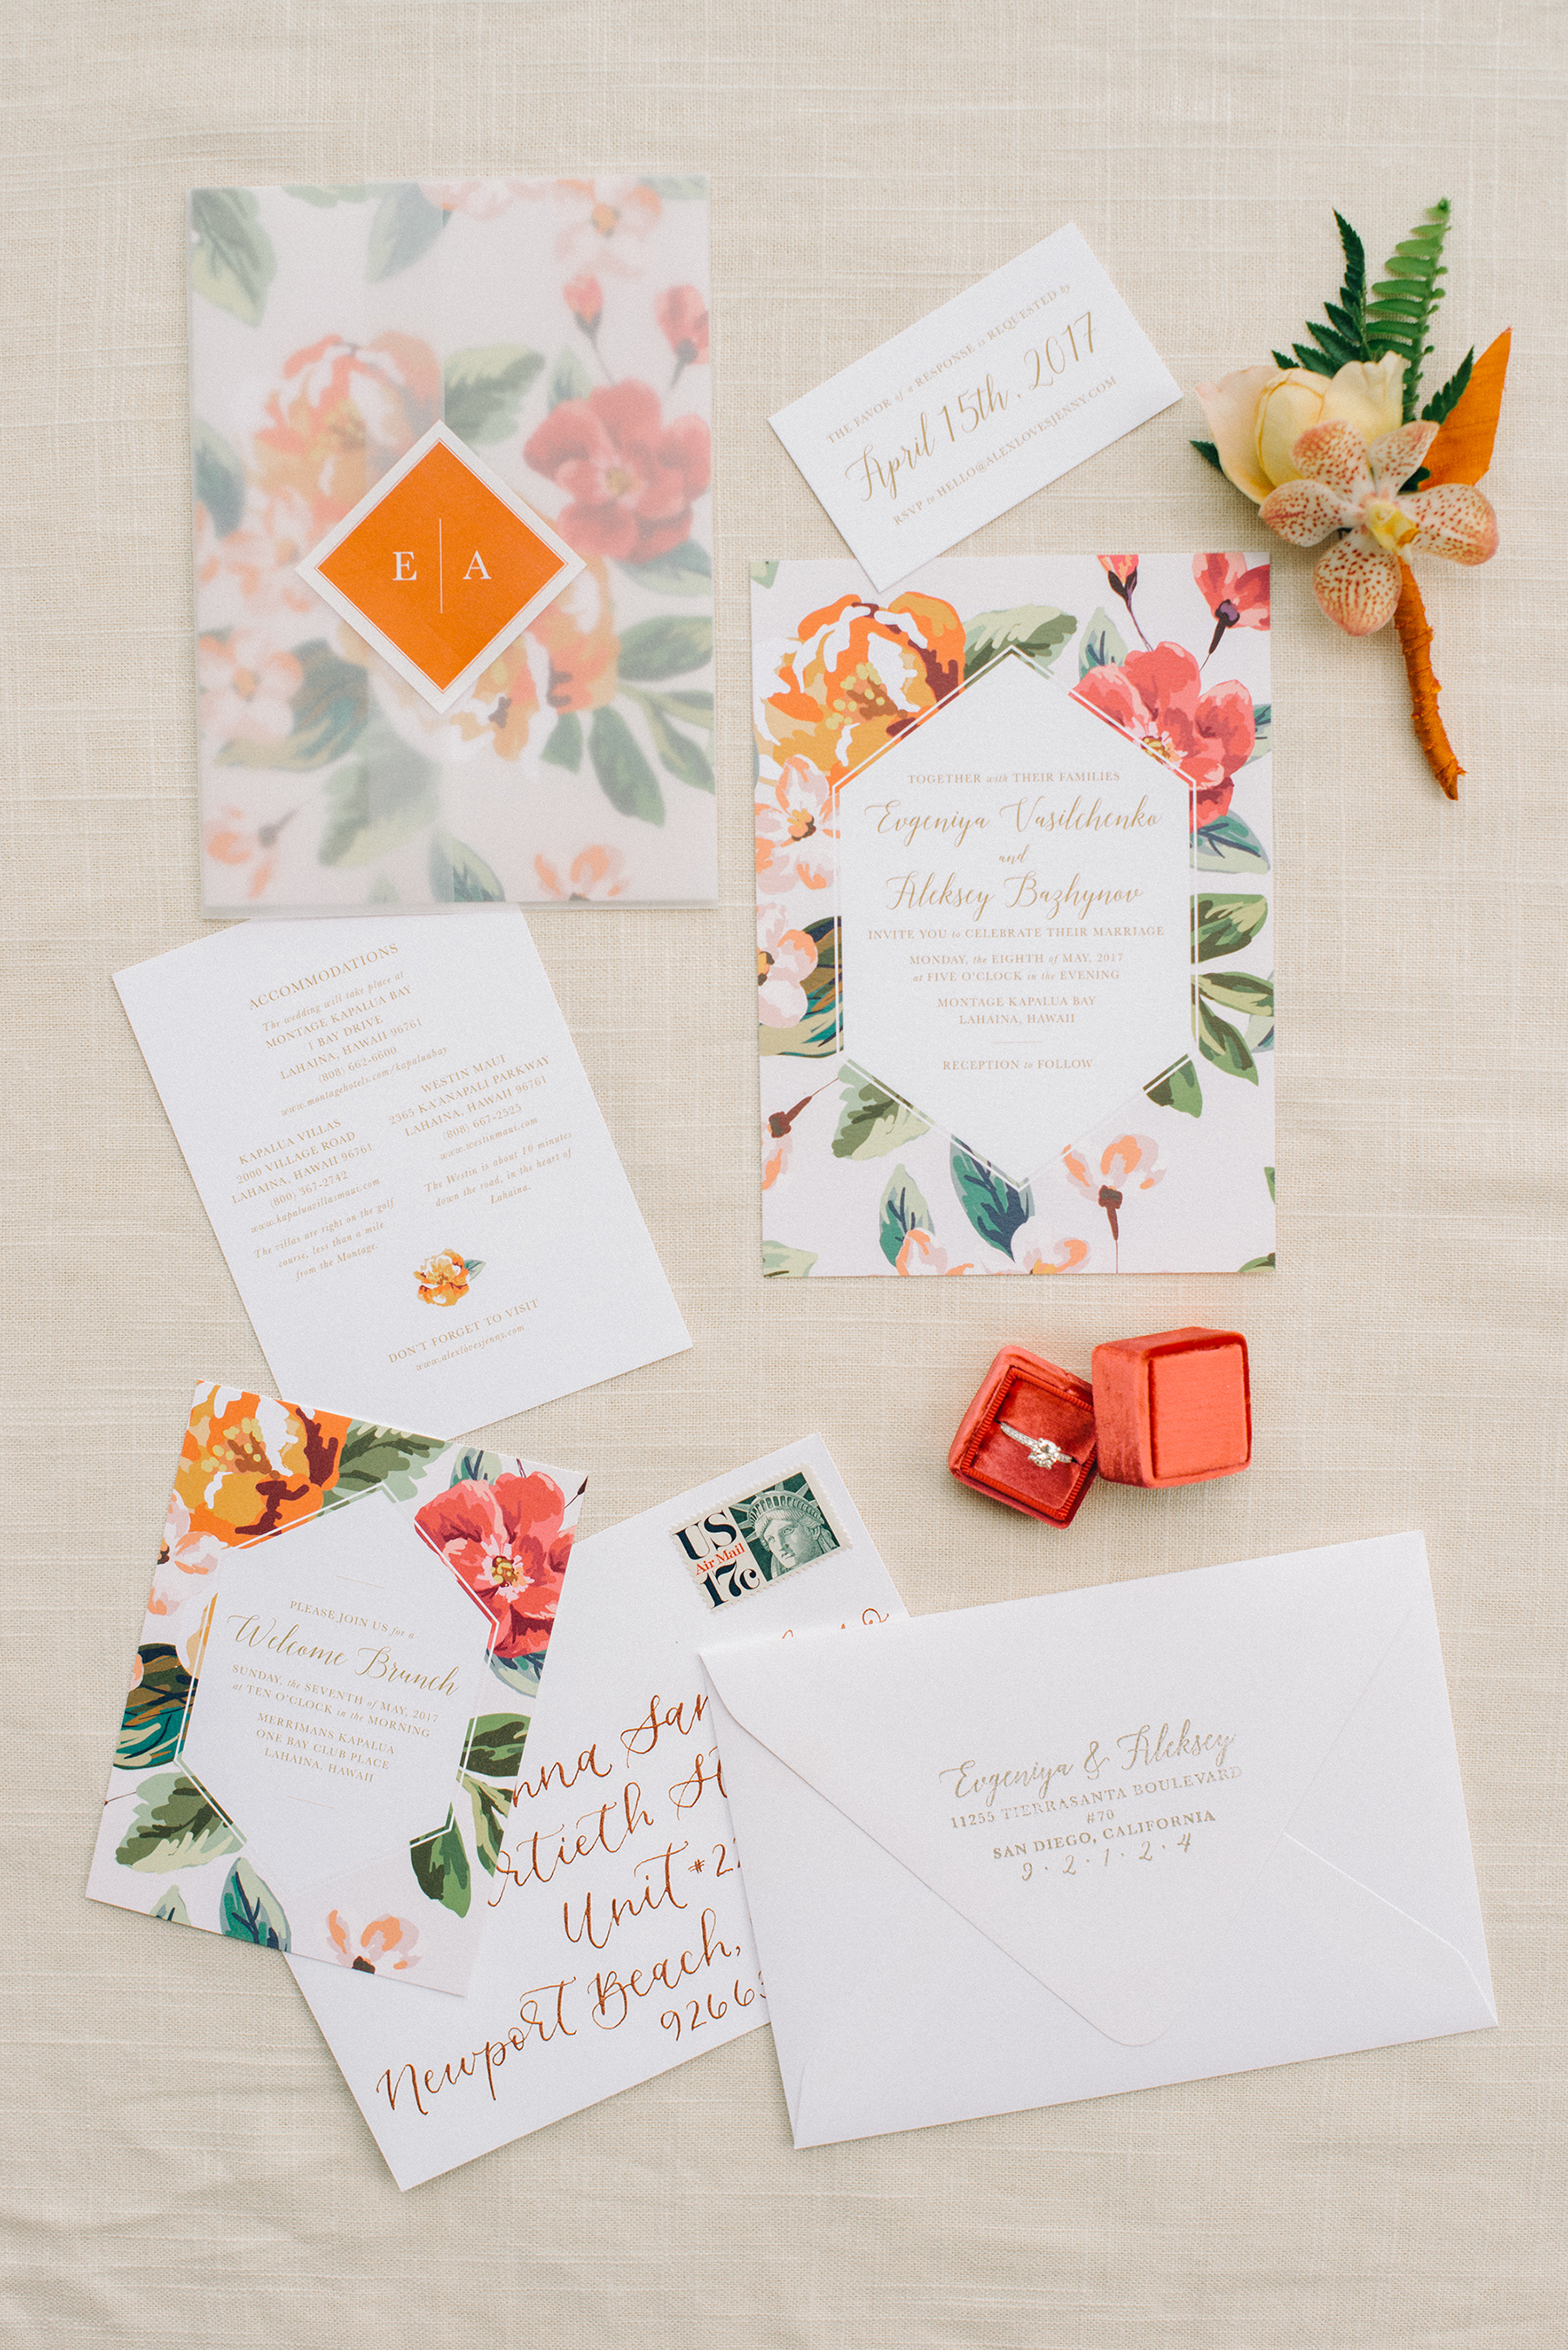 floral stationery with geometric design and vellum